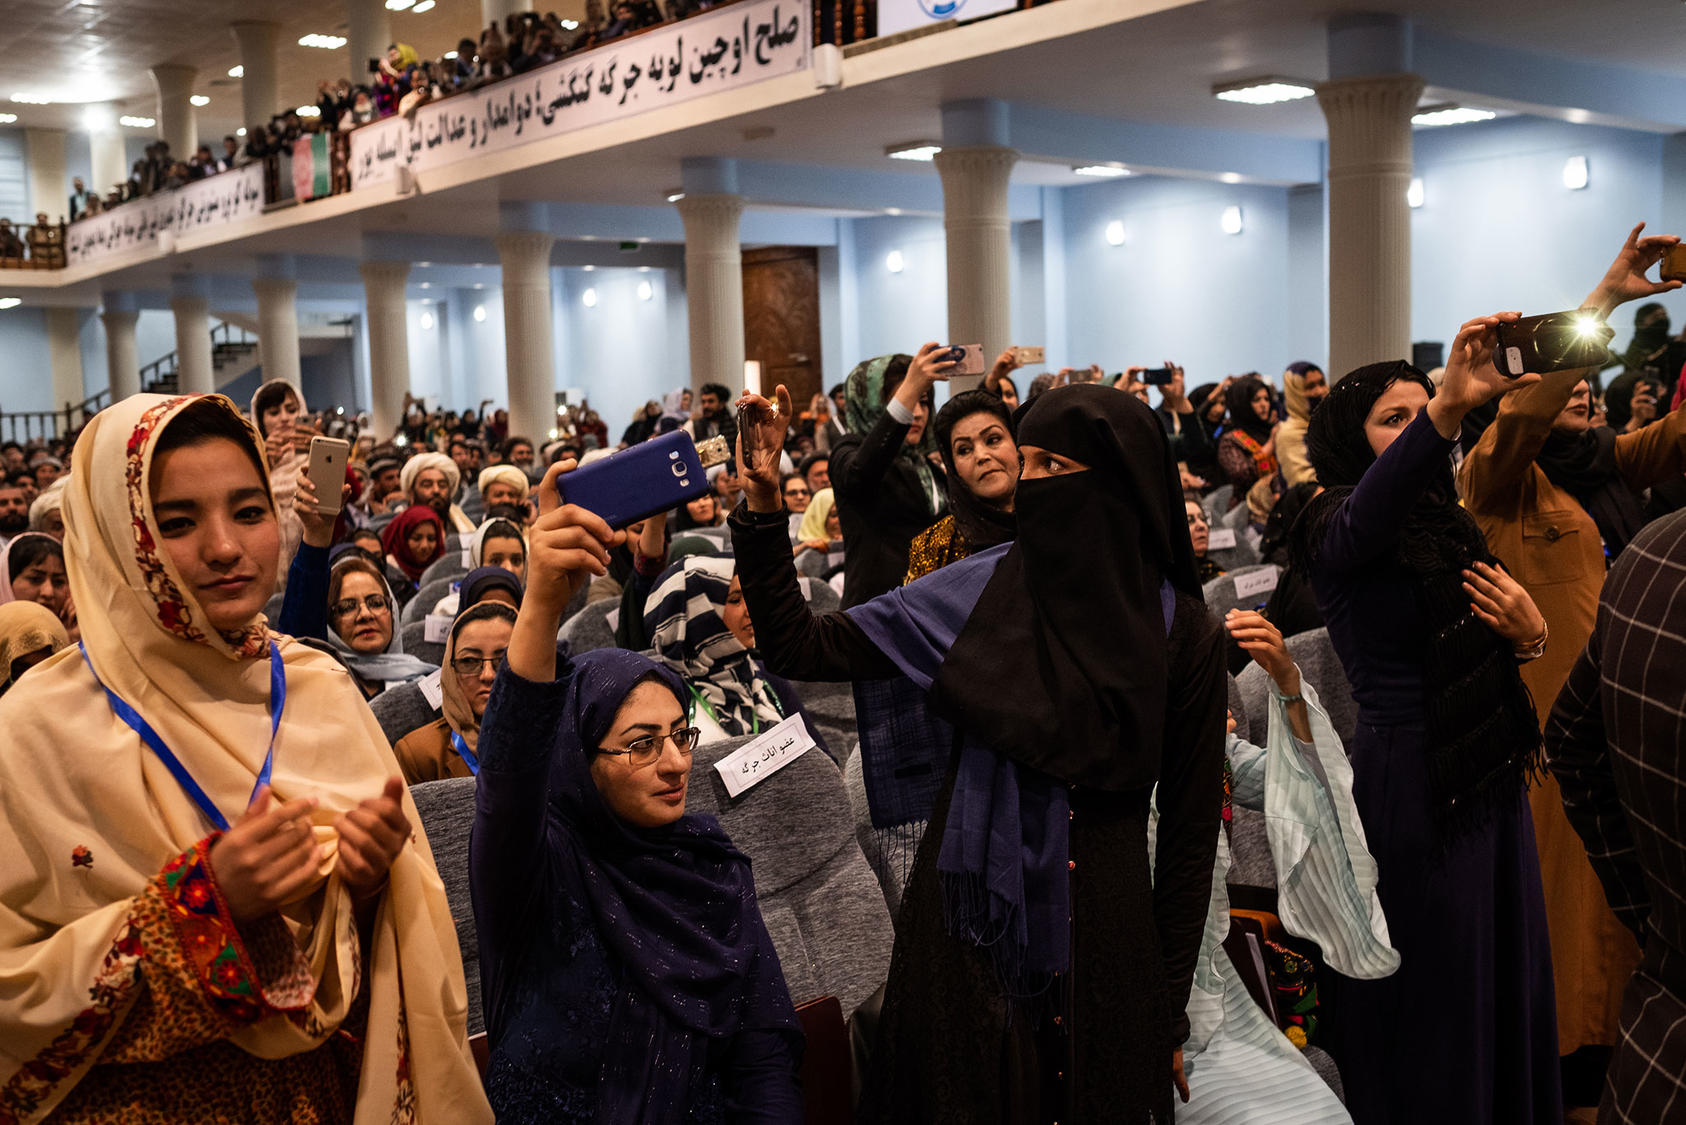 Female delegates during the opening ceremony of Afghanistan's Grand Assembly, April 29, 2019. An expected agreement between the U.S. and the Taliban to smooth future negotiations raises concerns that women may lose some freedoms. (Jim Huylebroek/The New York Times)